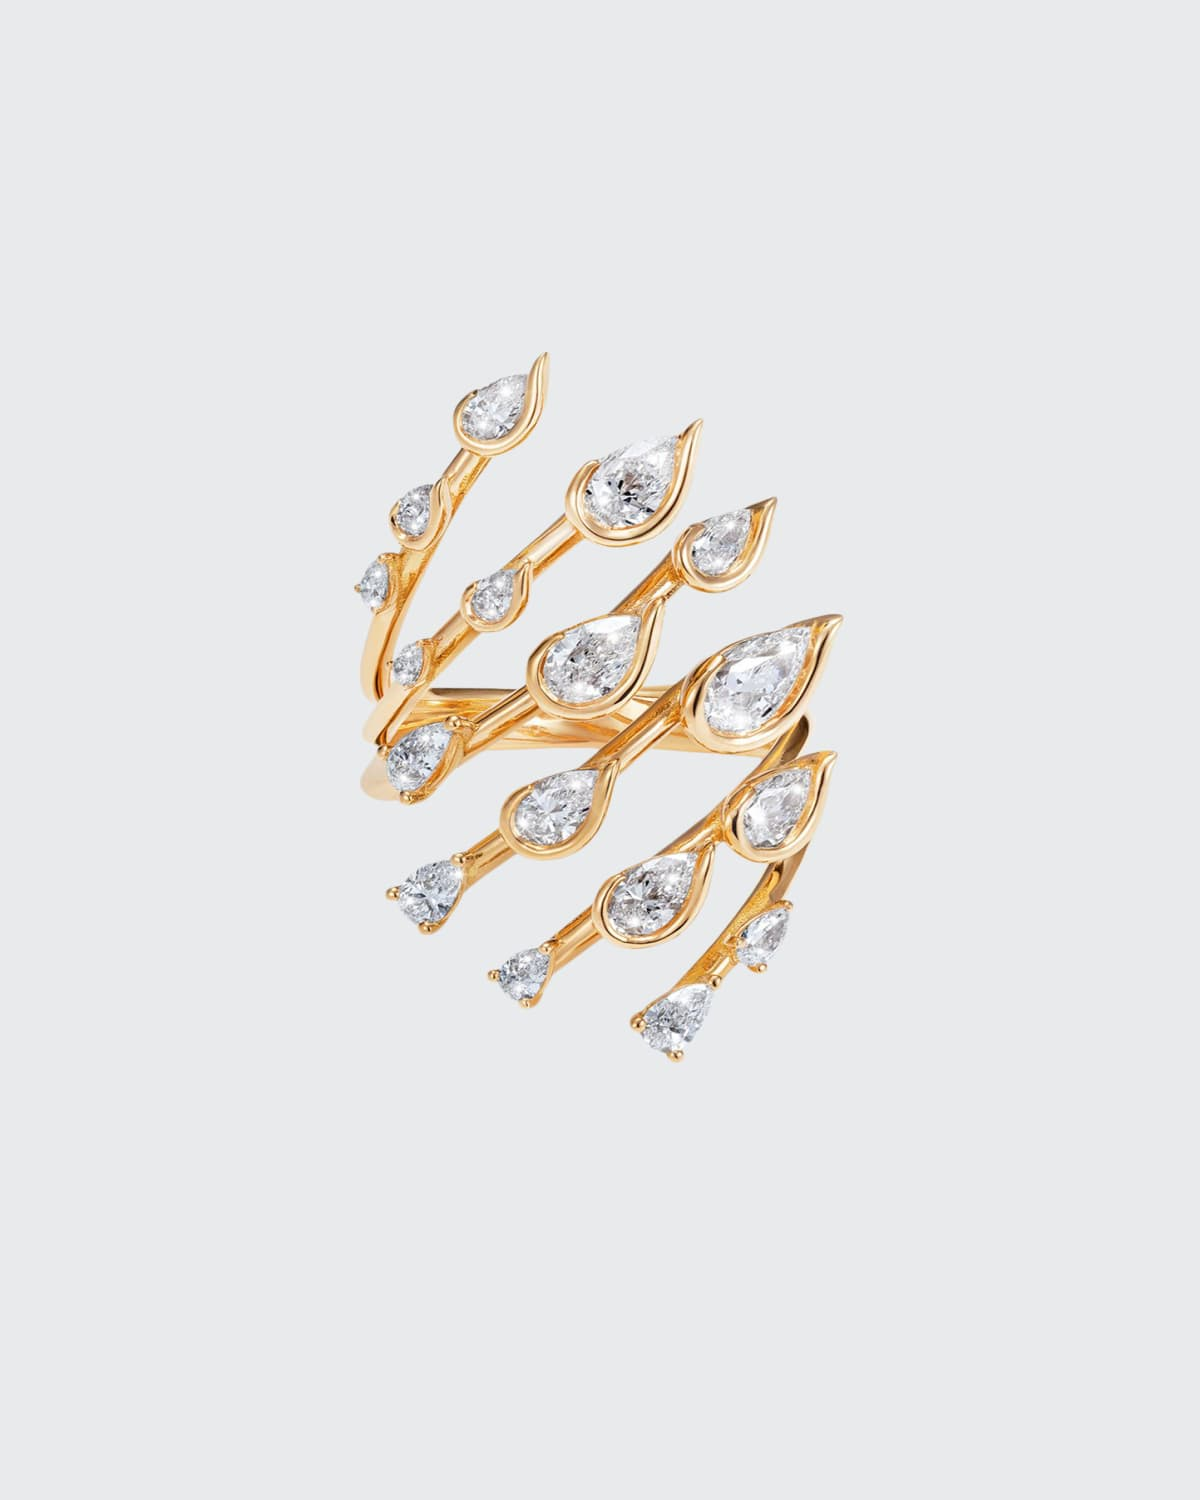 Flare Small Ring in 18K Yellow Gold and Diamonds